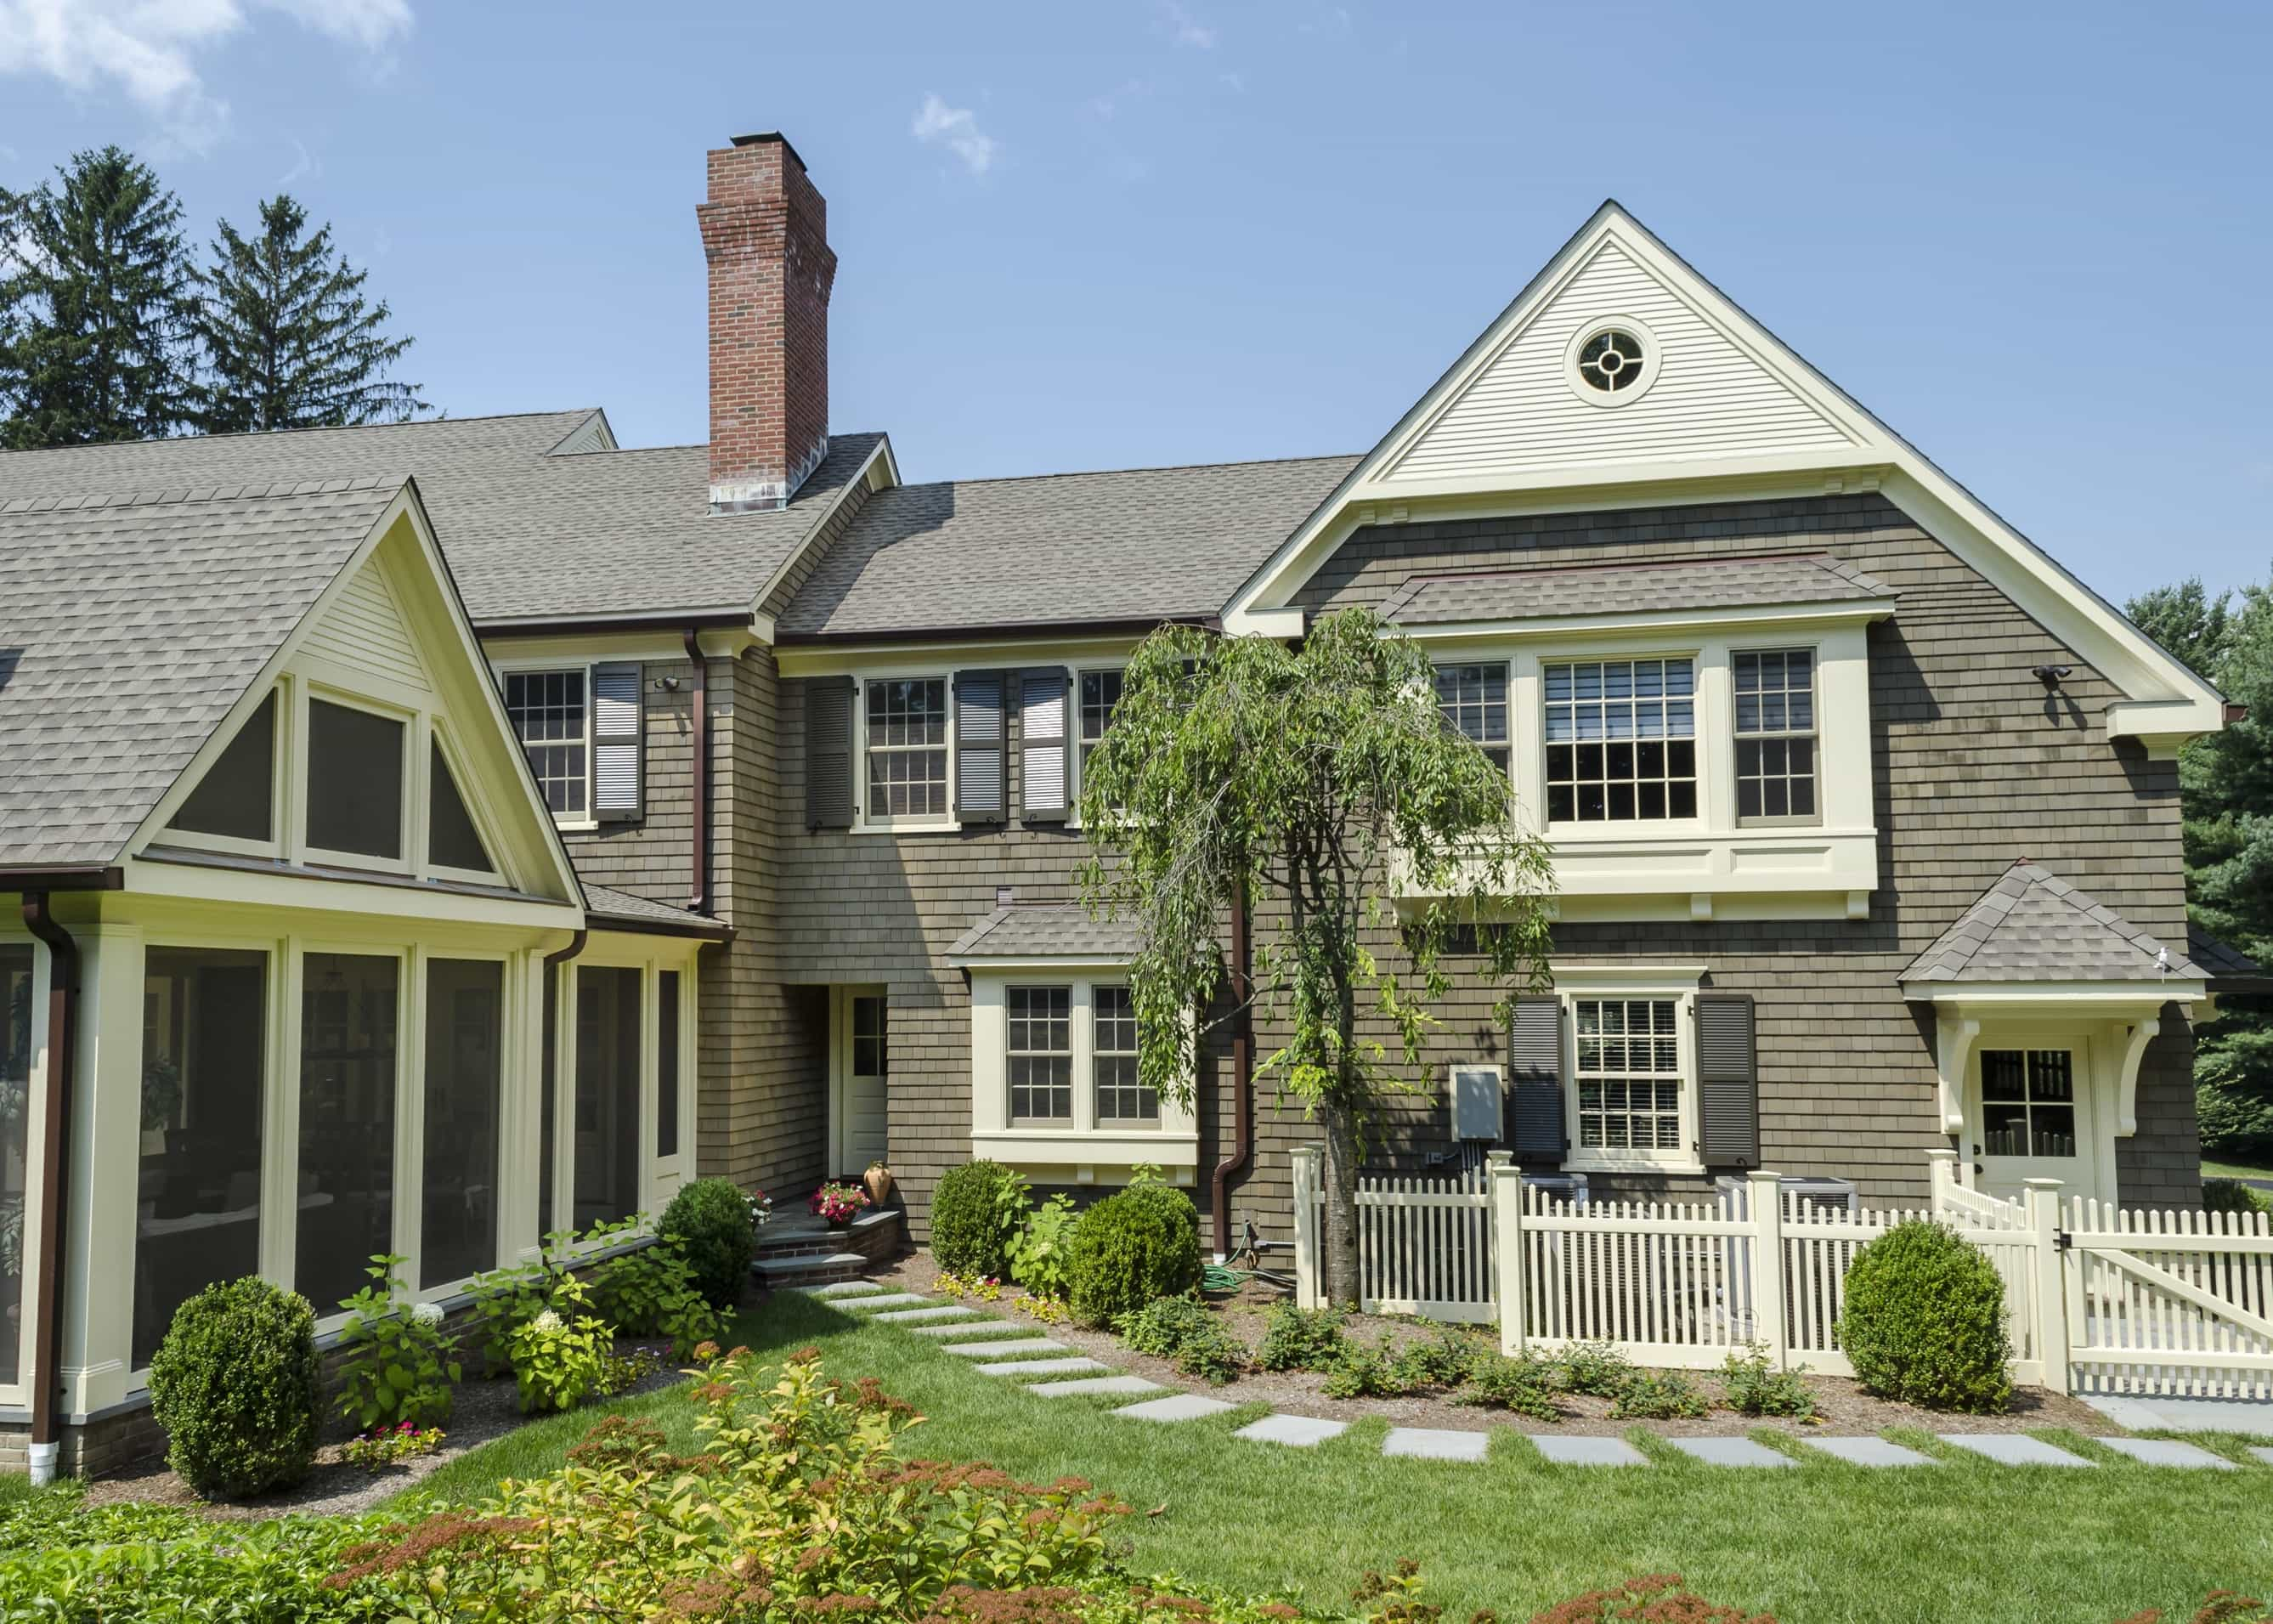 Featured Image of Rear Facade Of Classic Colonial Home With Screened Porch